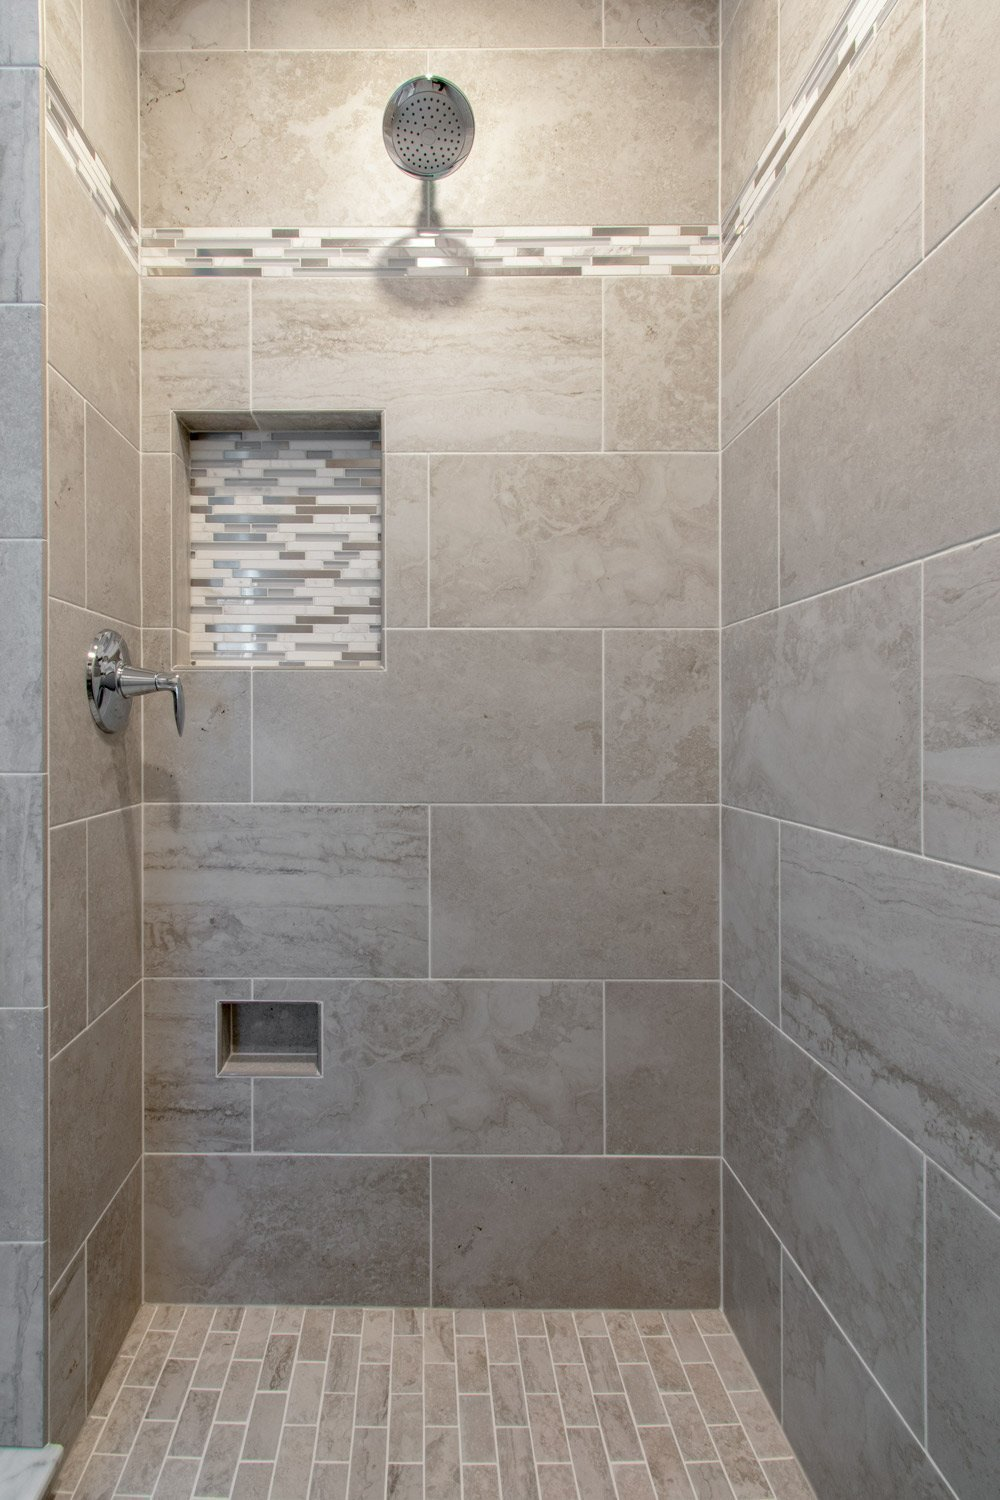 tiled walk in shower with mosaic tile in niche